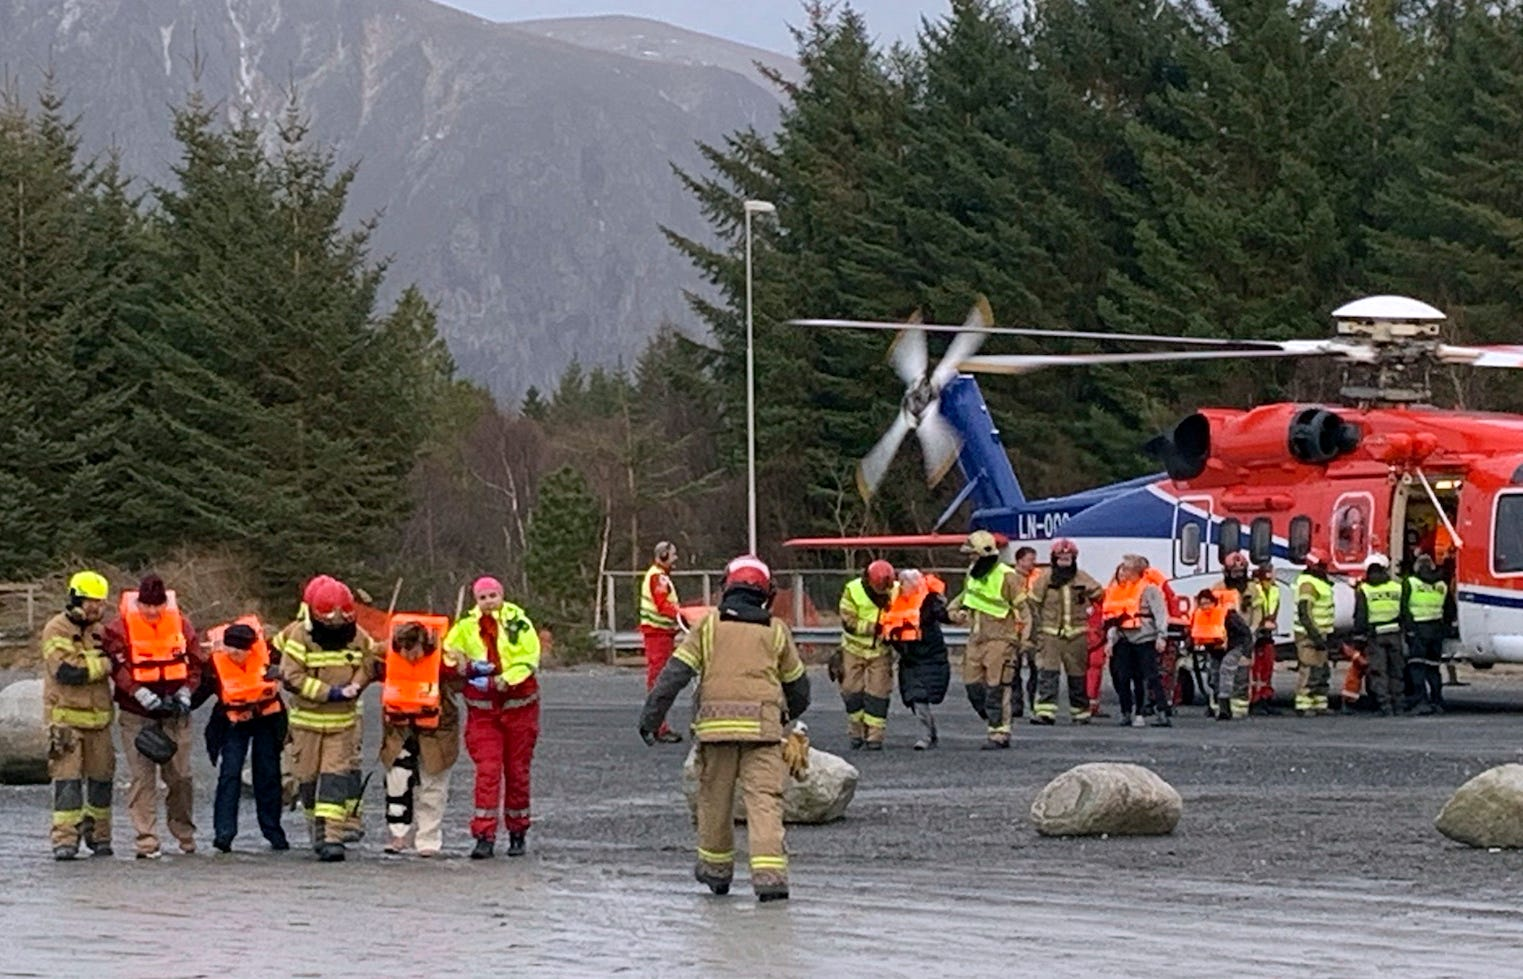 Passengers rescued from the Viking Sky cruise ship are helped from a helicopter in Hustadvika, Norway, Saturday March 23, 2019.